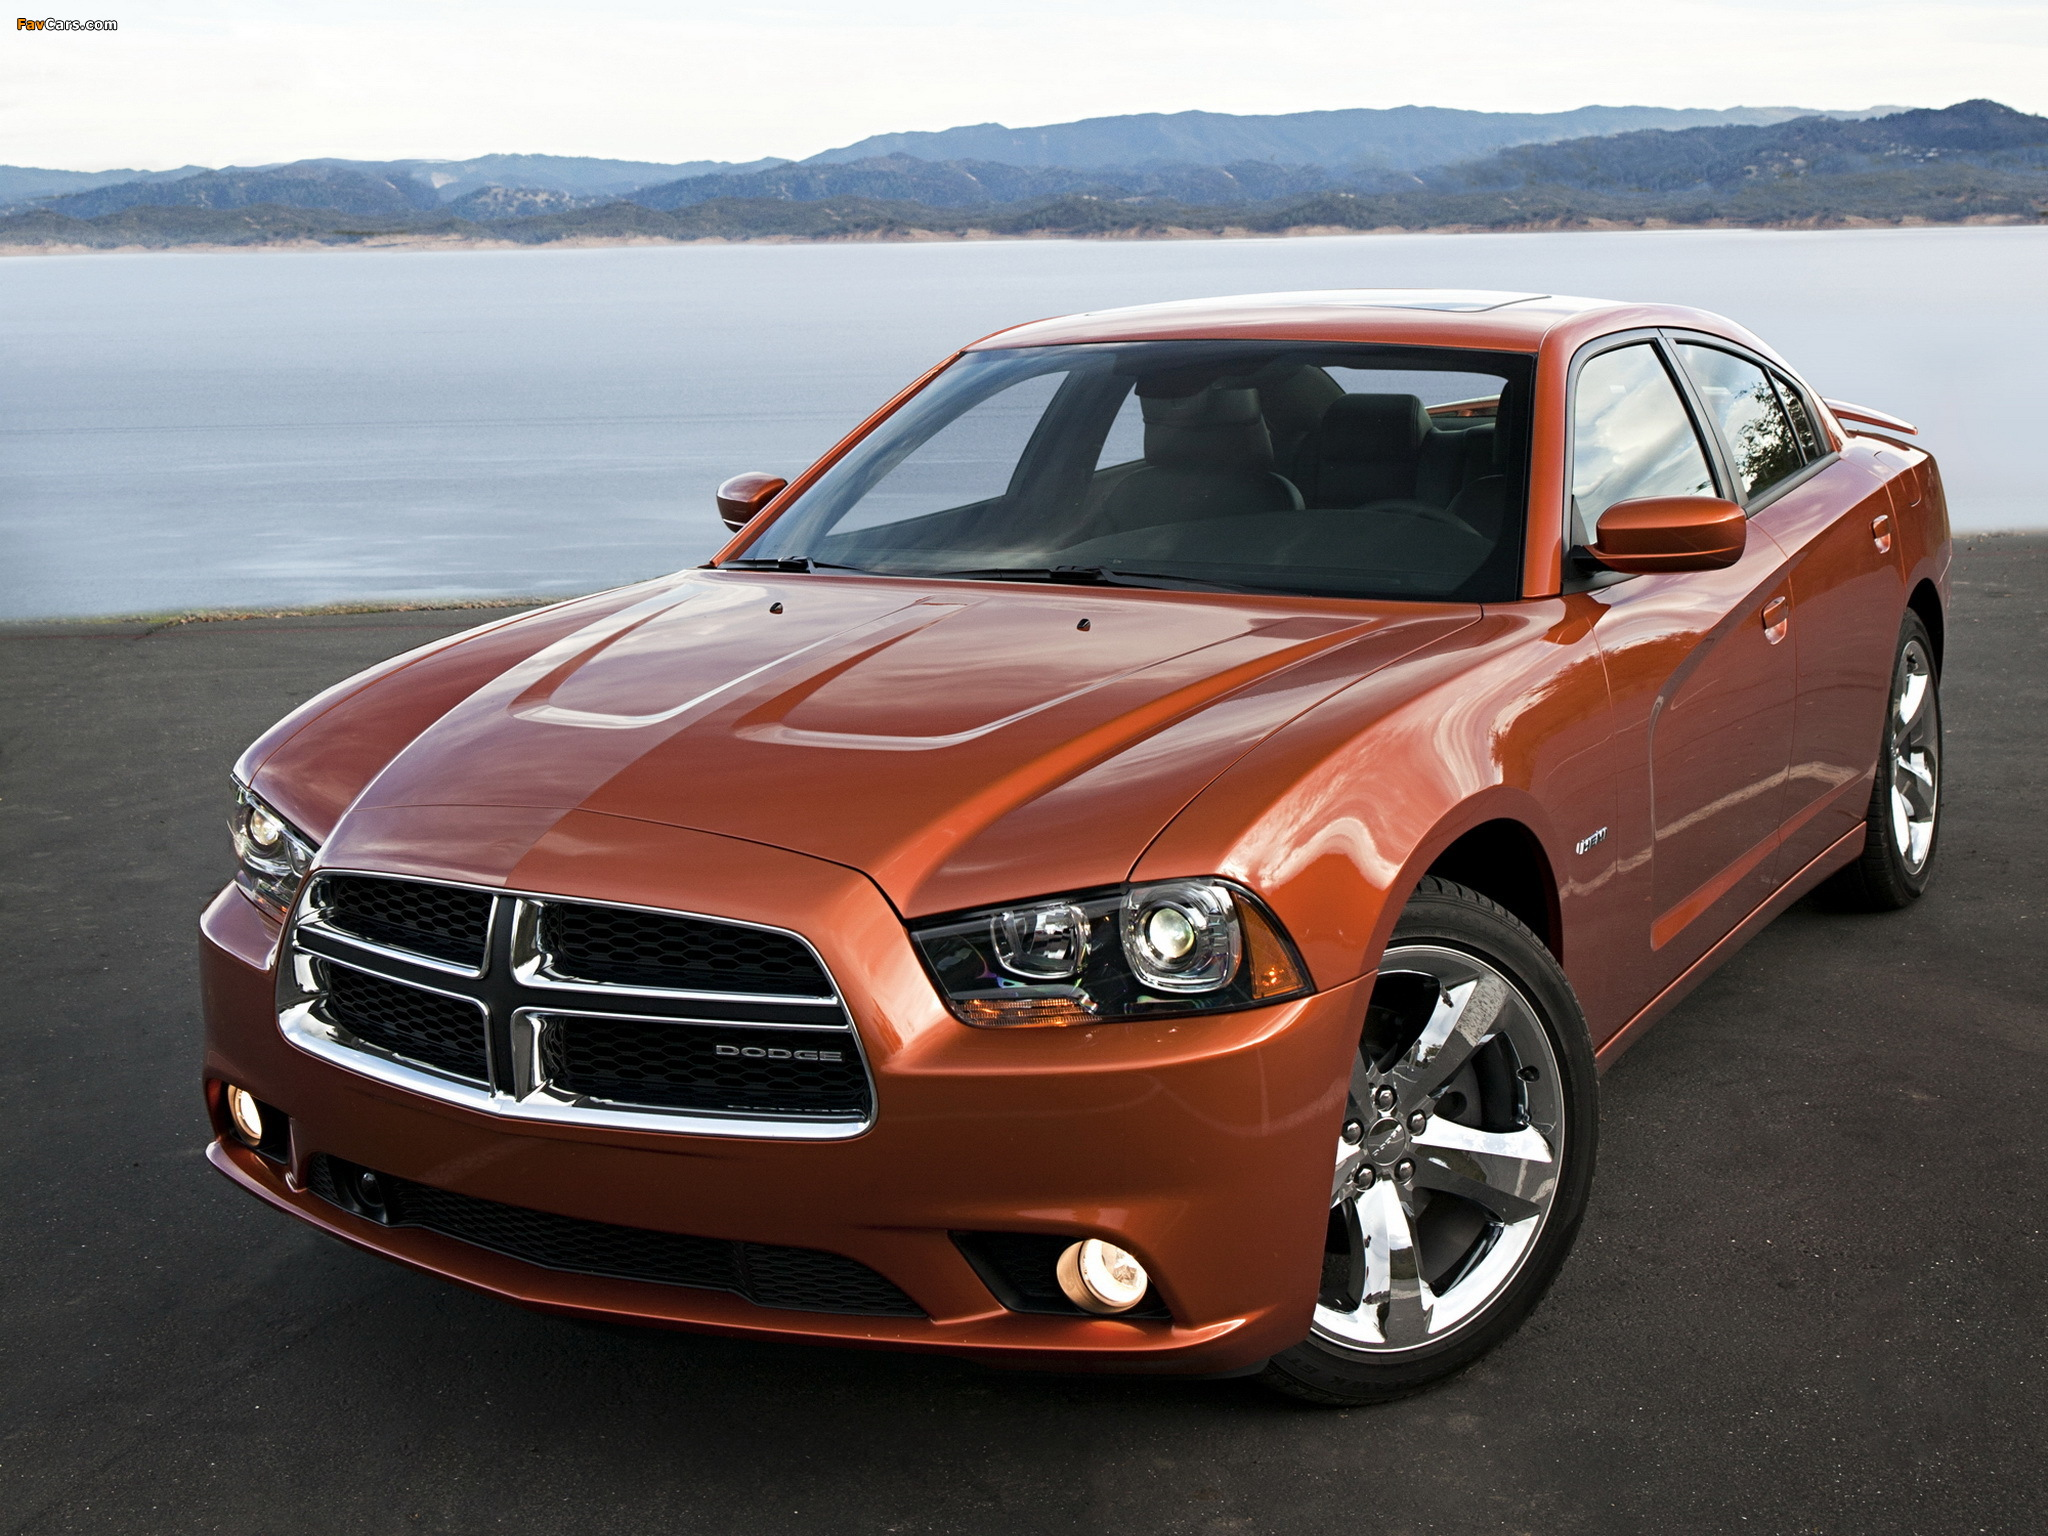 Dodge Charger R/T 2011 images (2048 x 1536)